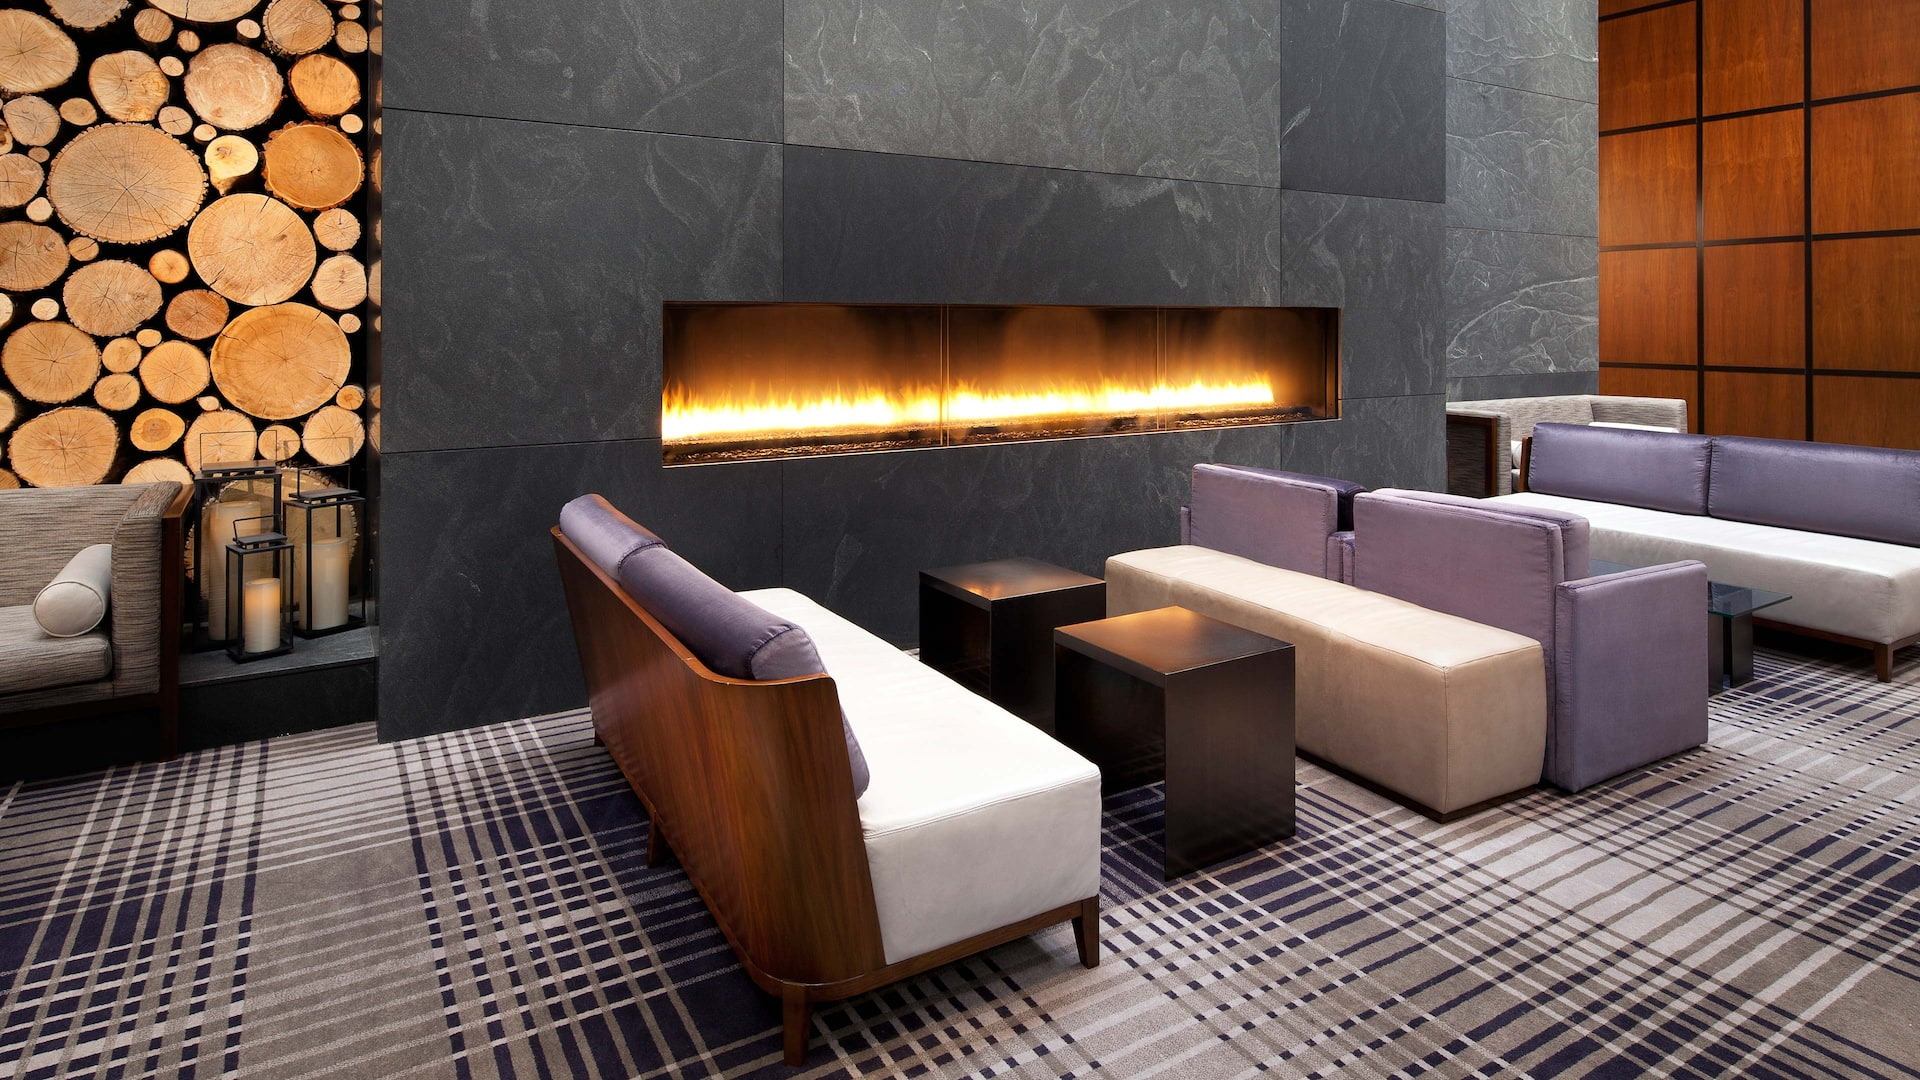 Hyatt Regency Minneapolis Lobby Fireplace